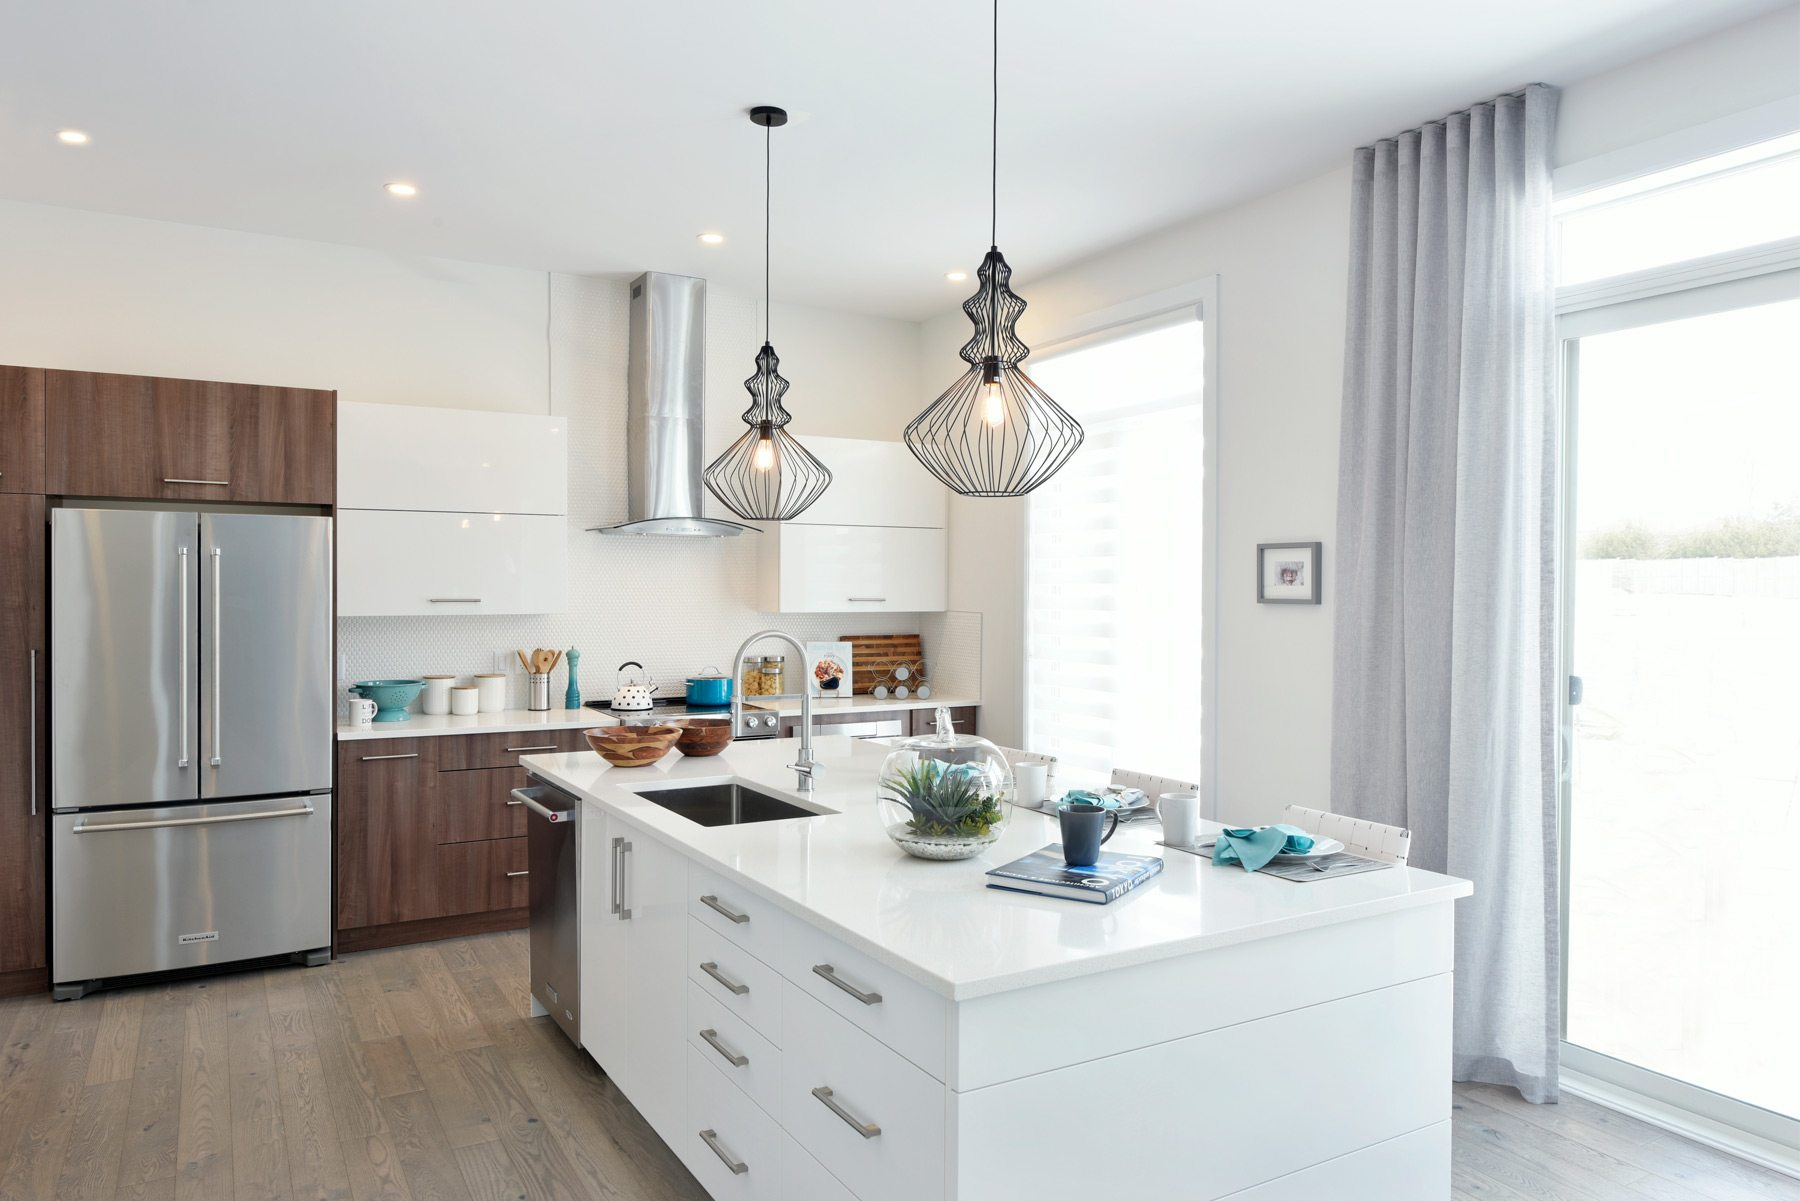 Minto's Heartwood kitchen. Photo: Gordon King Photography